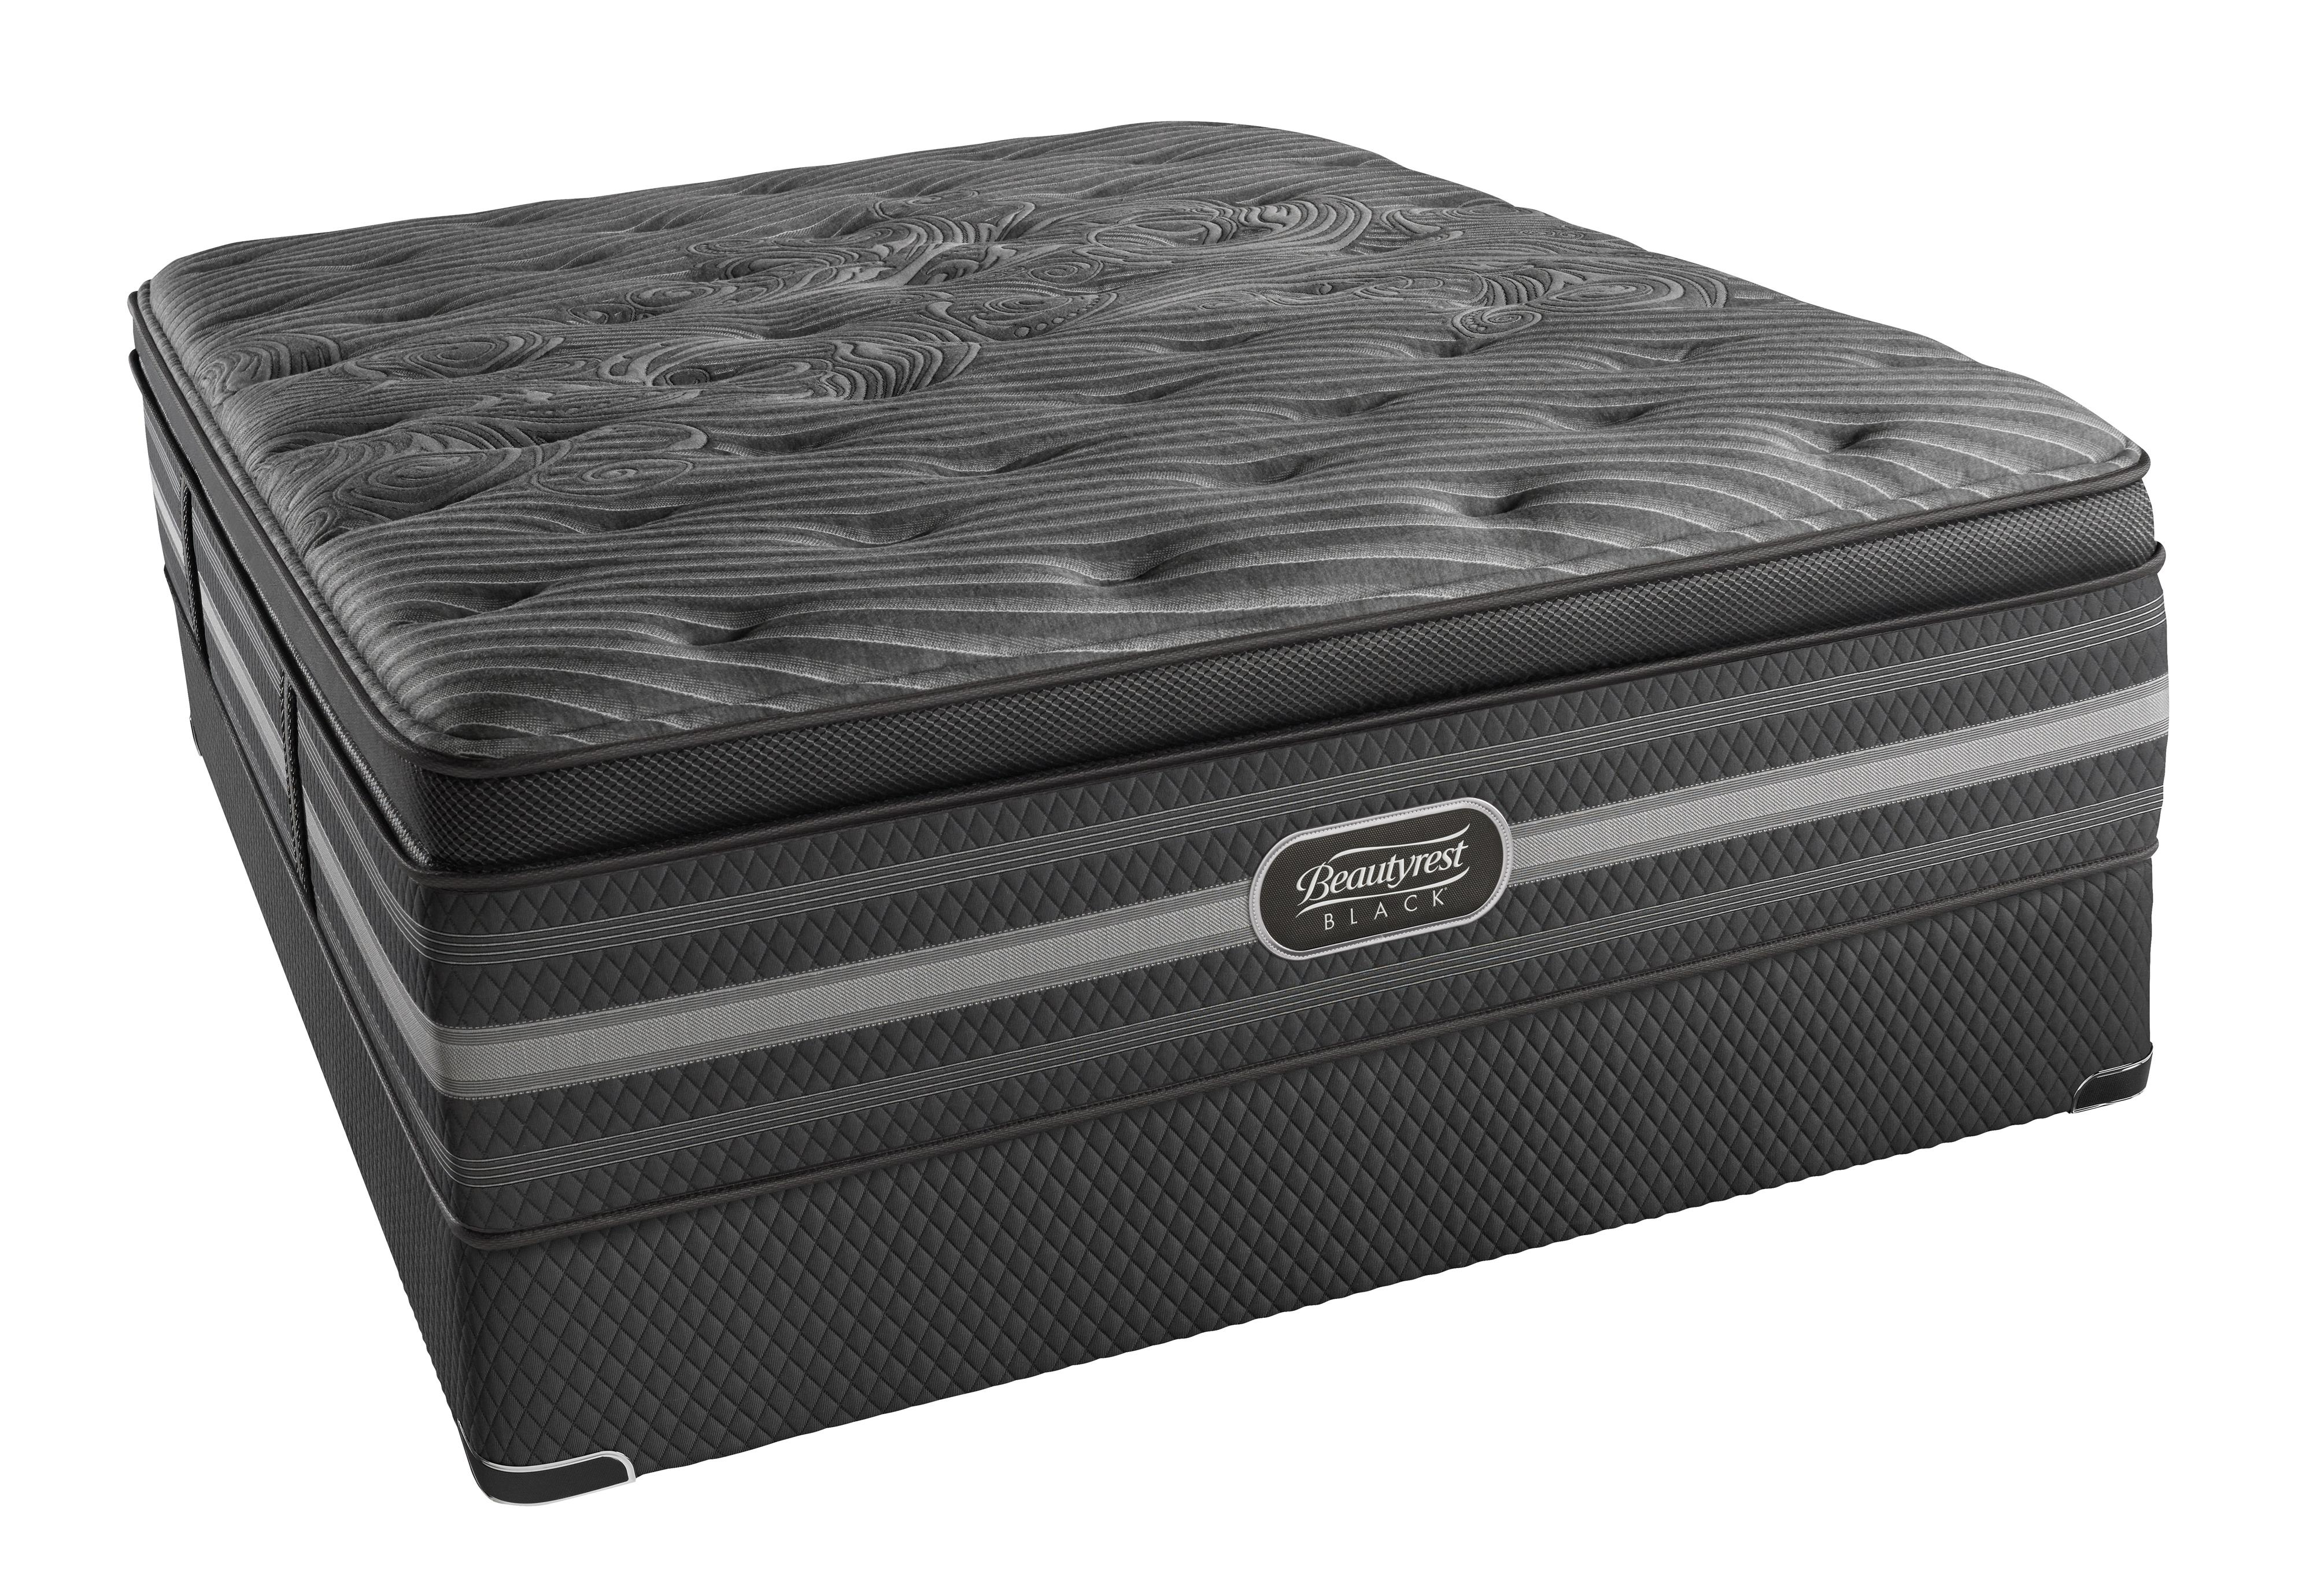 Beautyrest BR Black Natasha Queen Luxury Firm P.T. Mattress Set - Item Number: BRBLUXFMPT-Q+50462Q